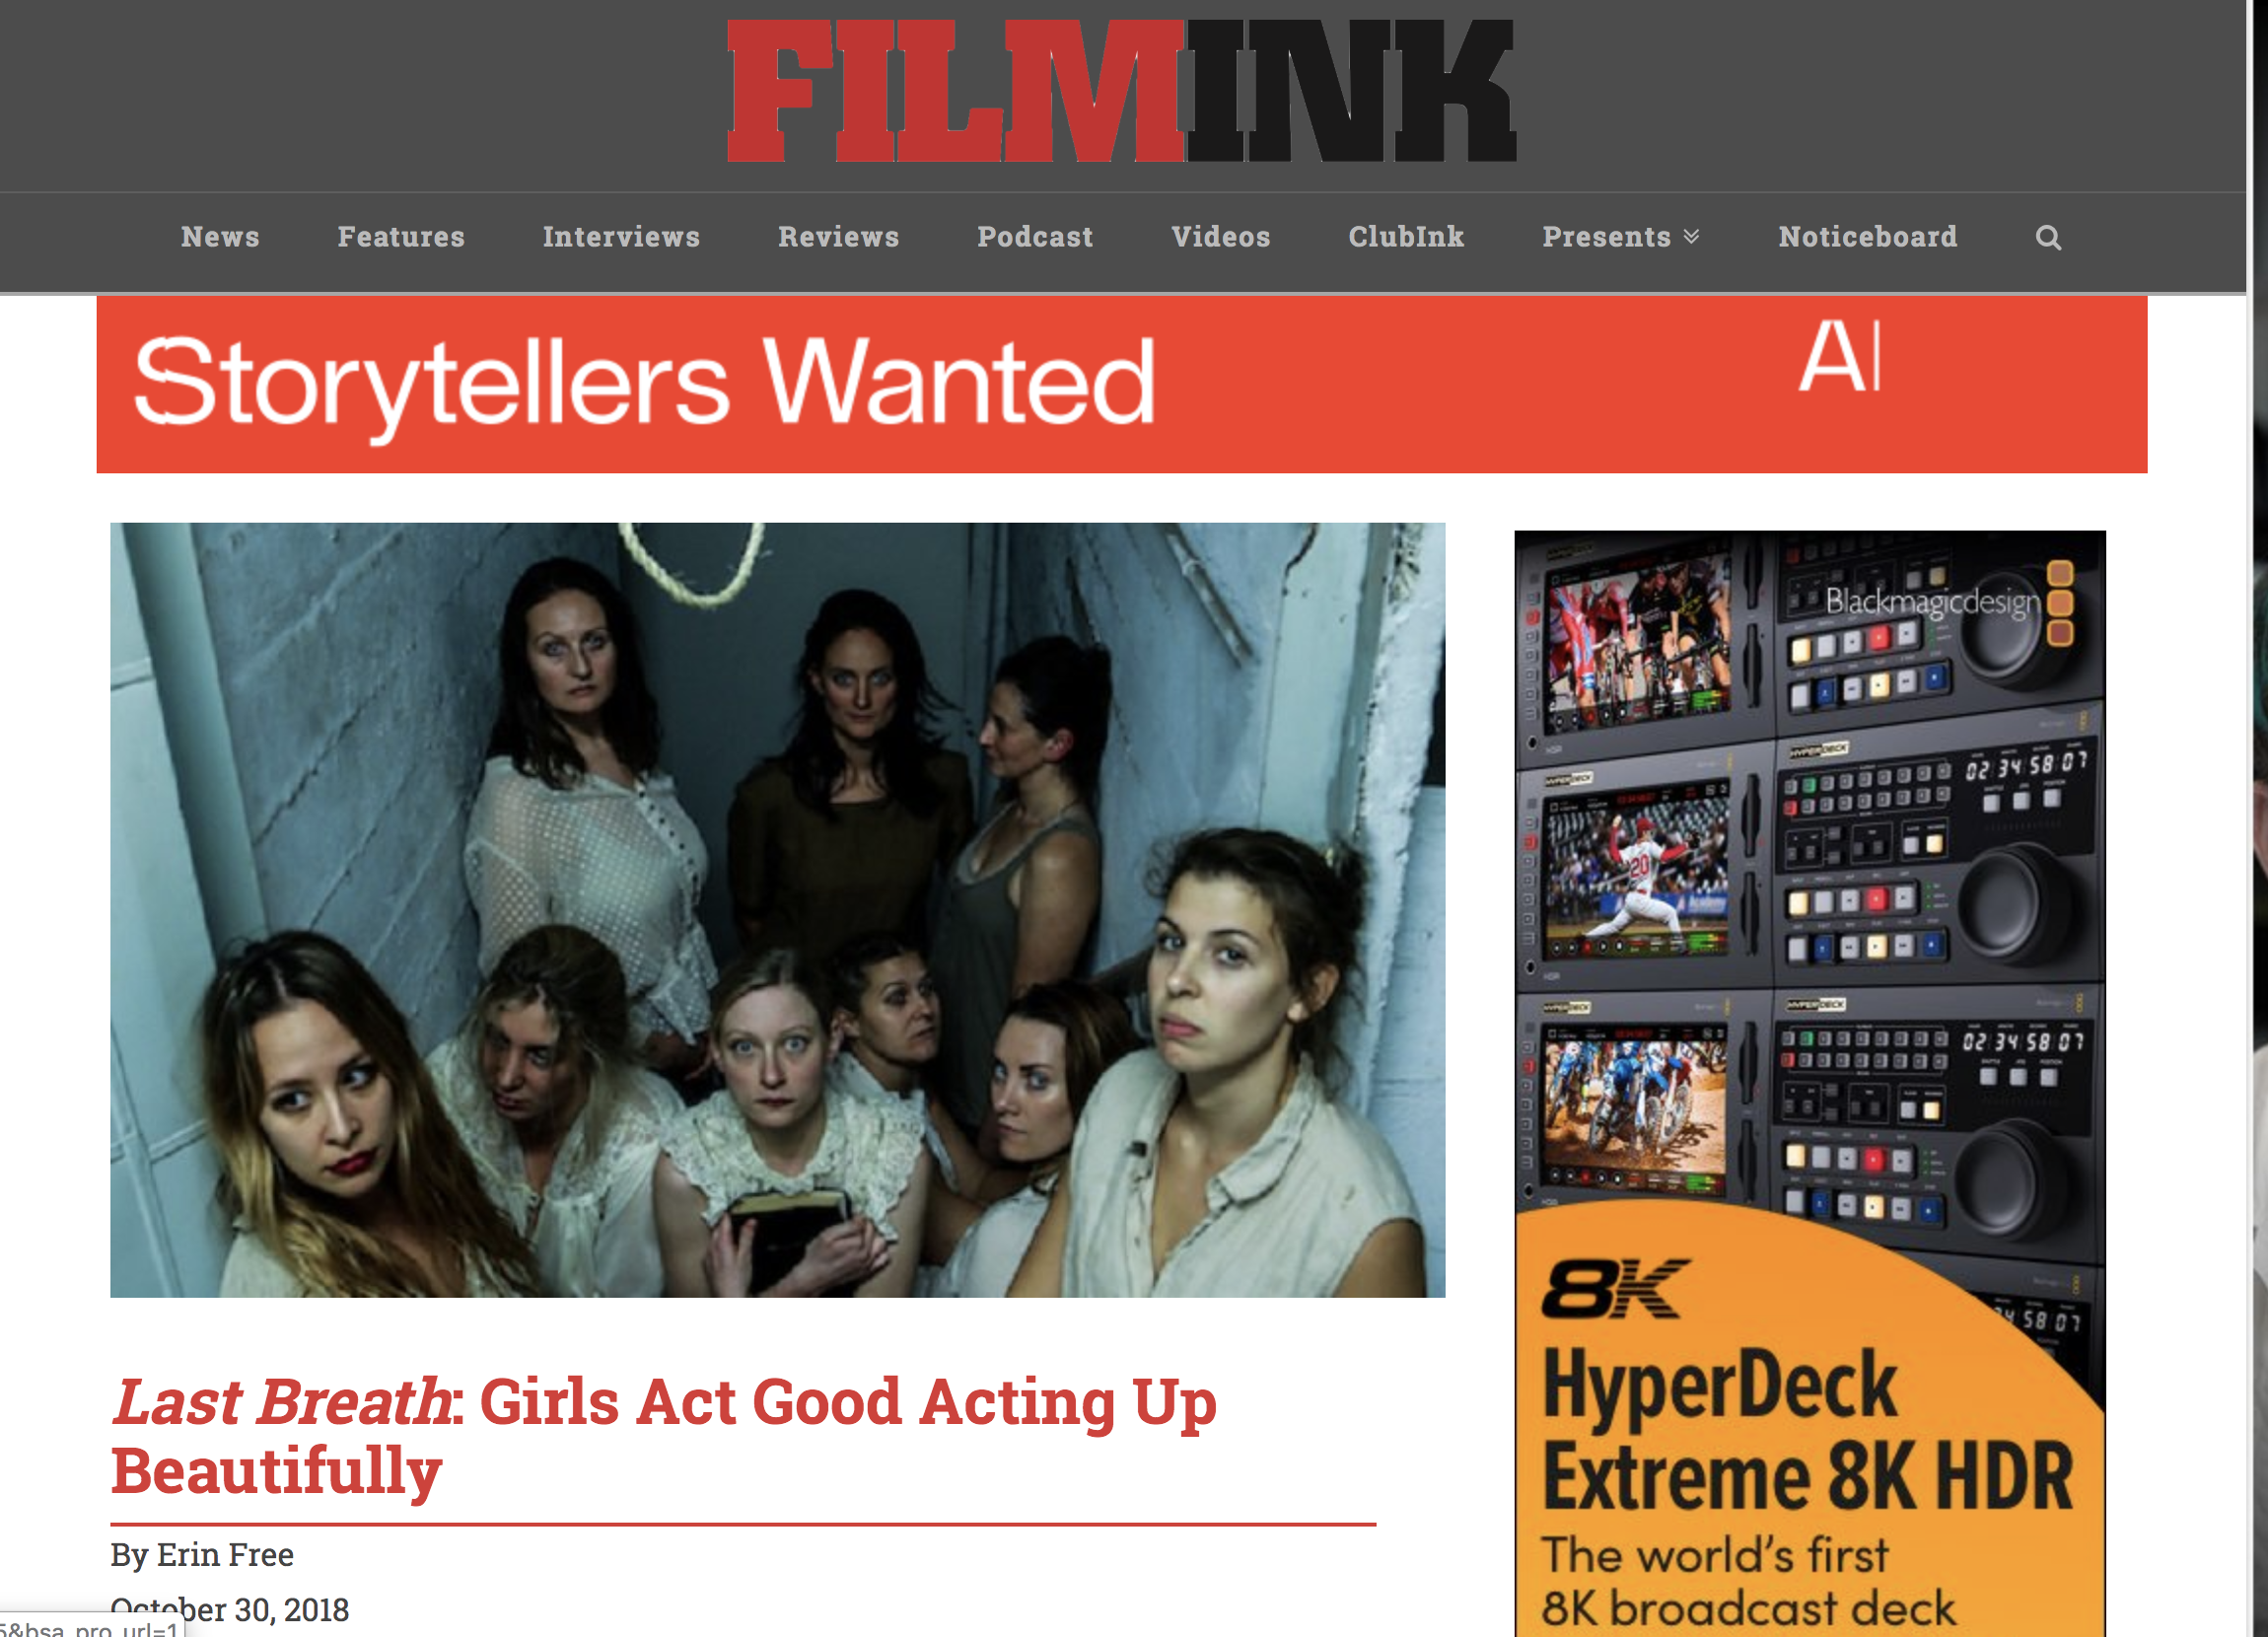 FILMINK review by Erin Free